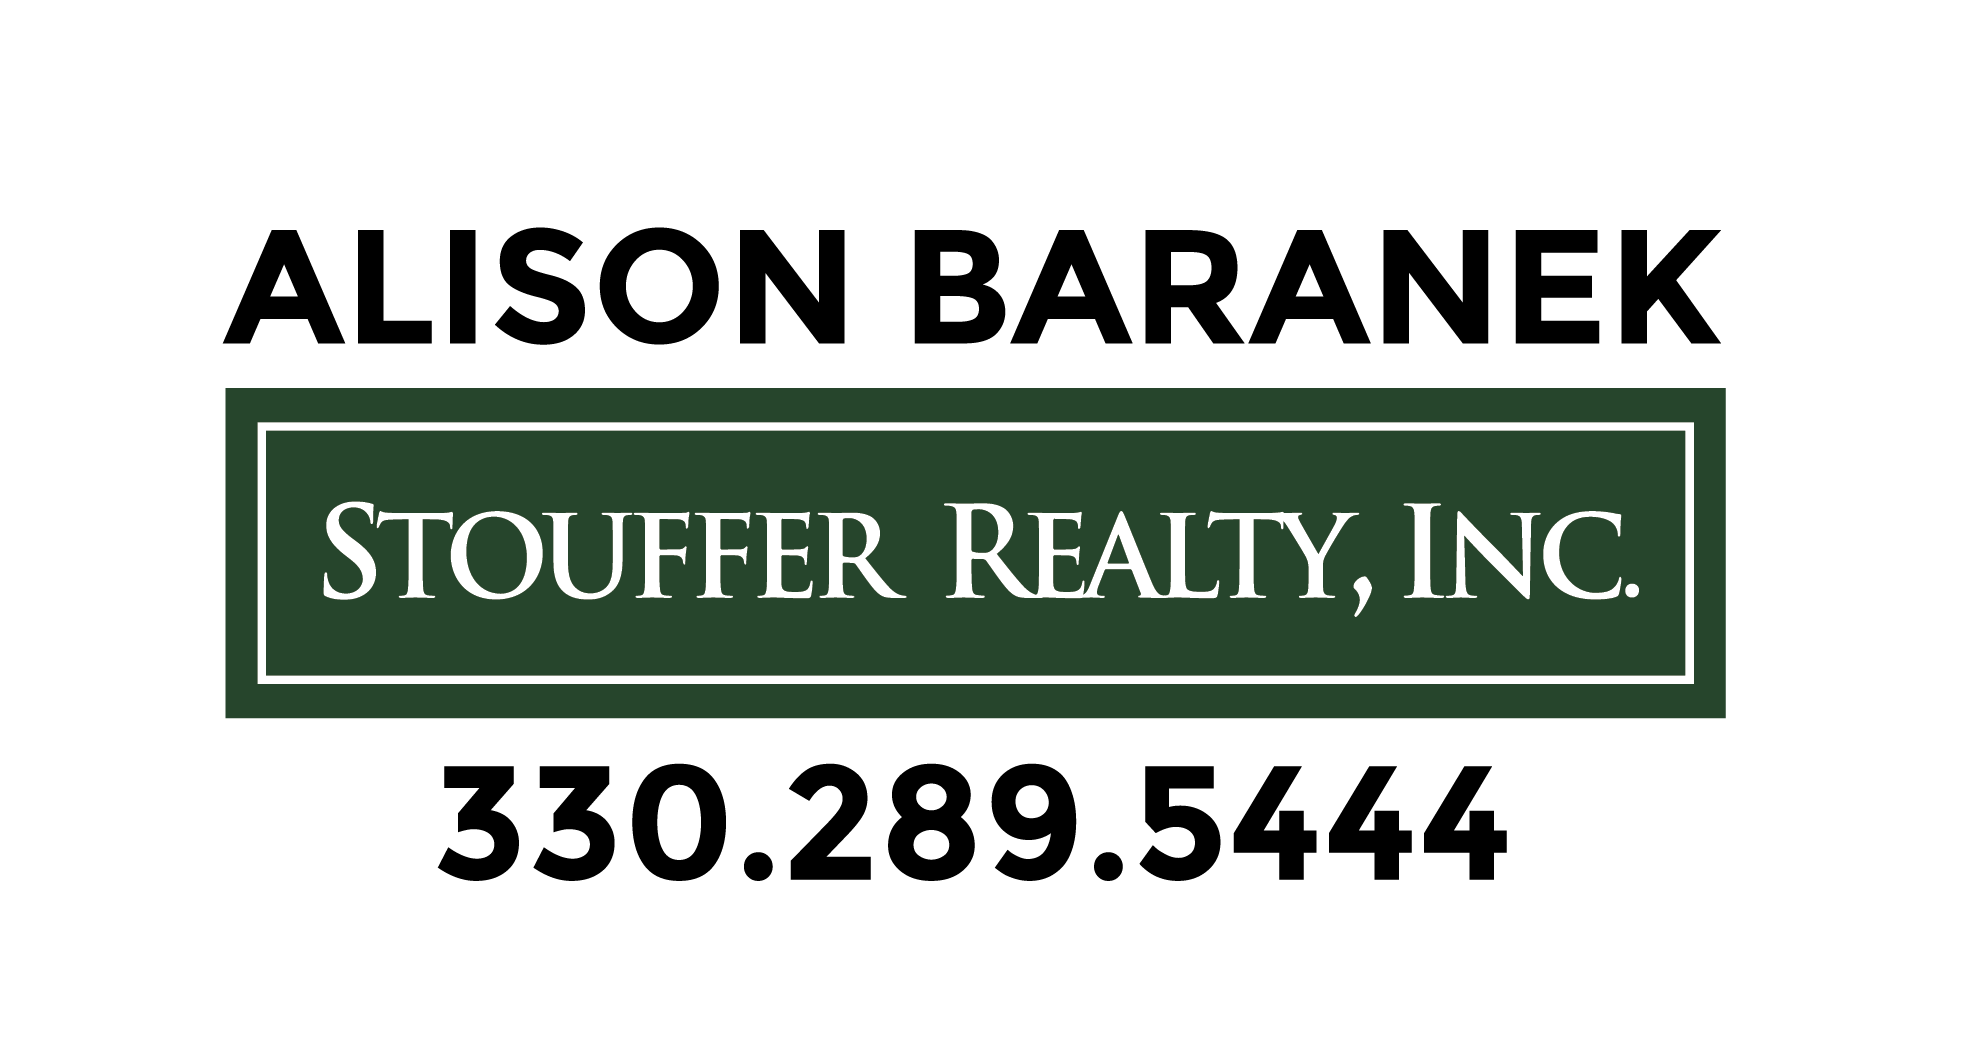 Alison Baranek Stouffer Realty